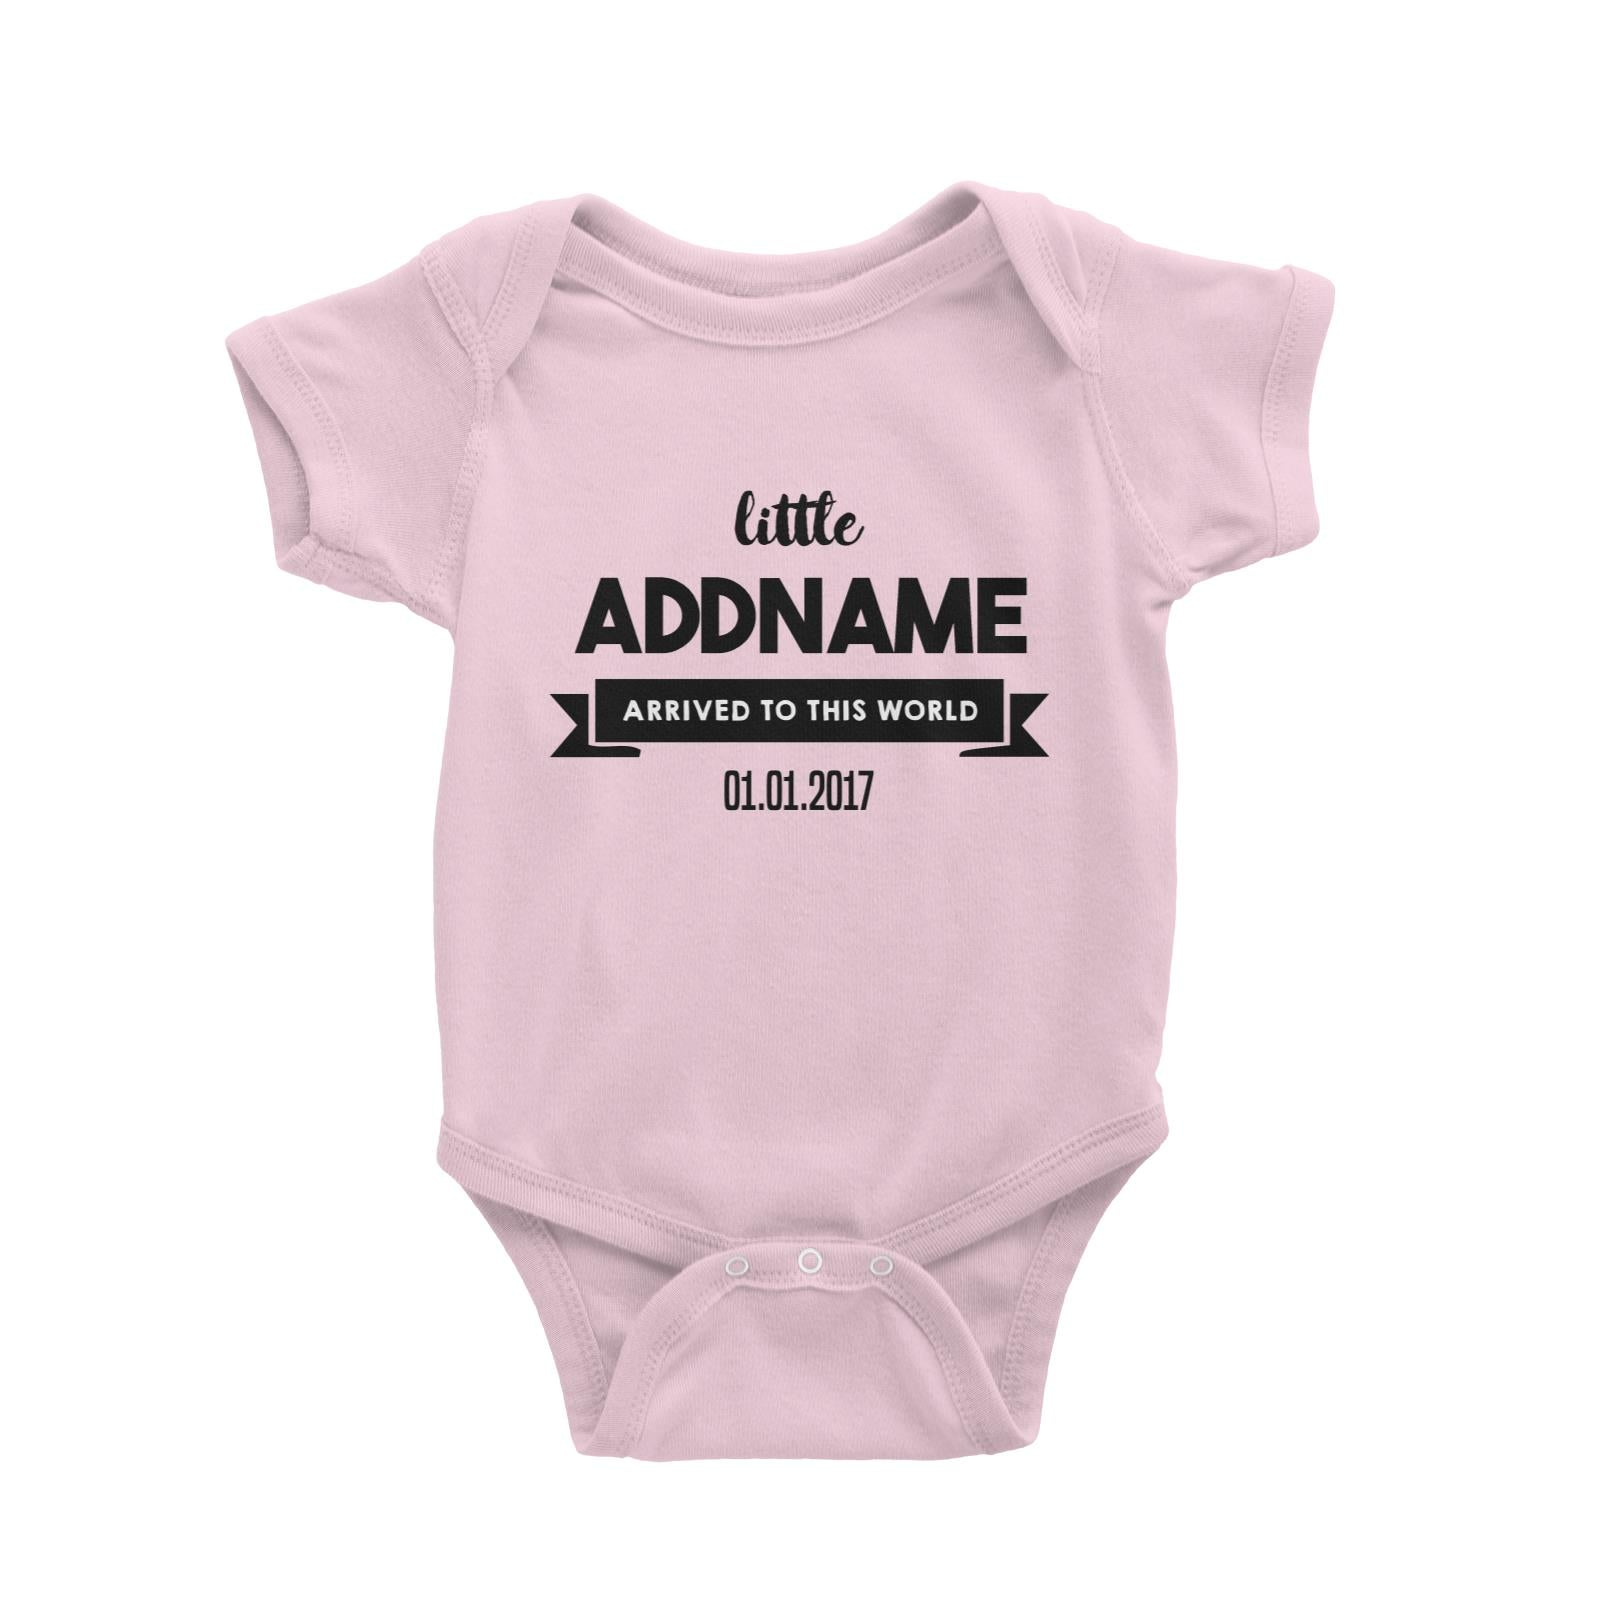 Baby Addname and Add Date Arrived To This World Baby Romper Personalizable Designs Basic Newborn